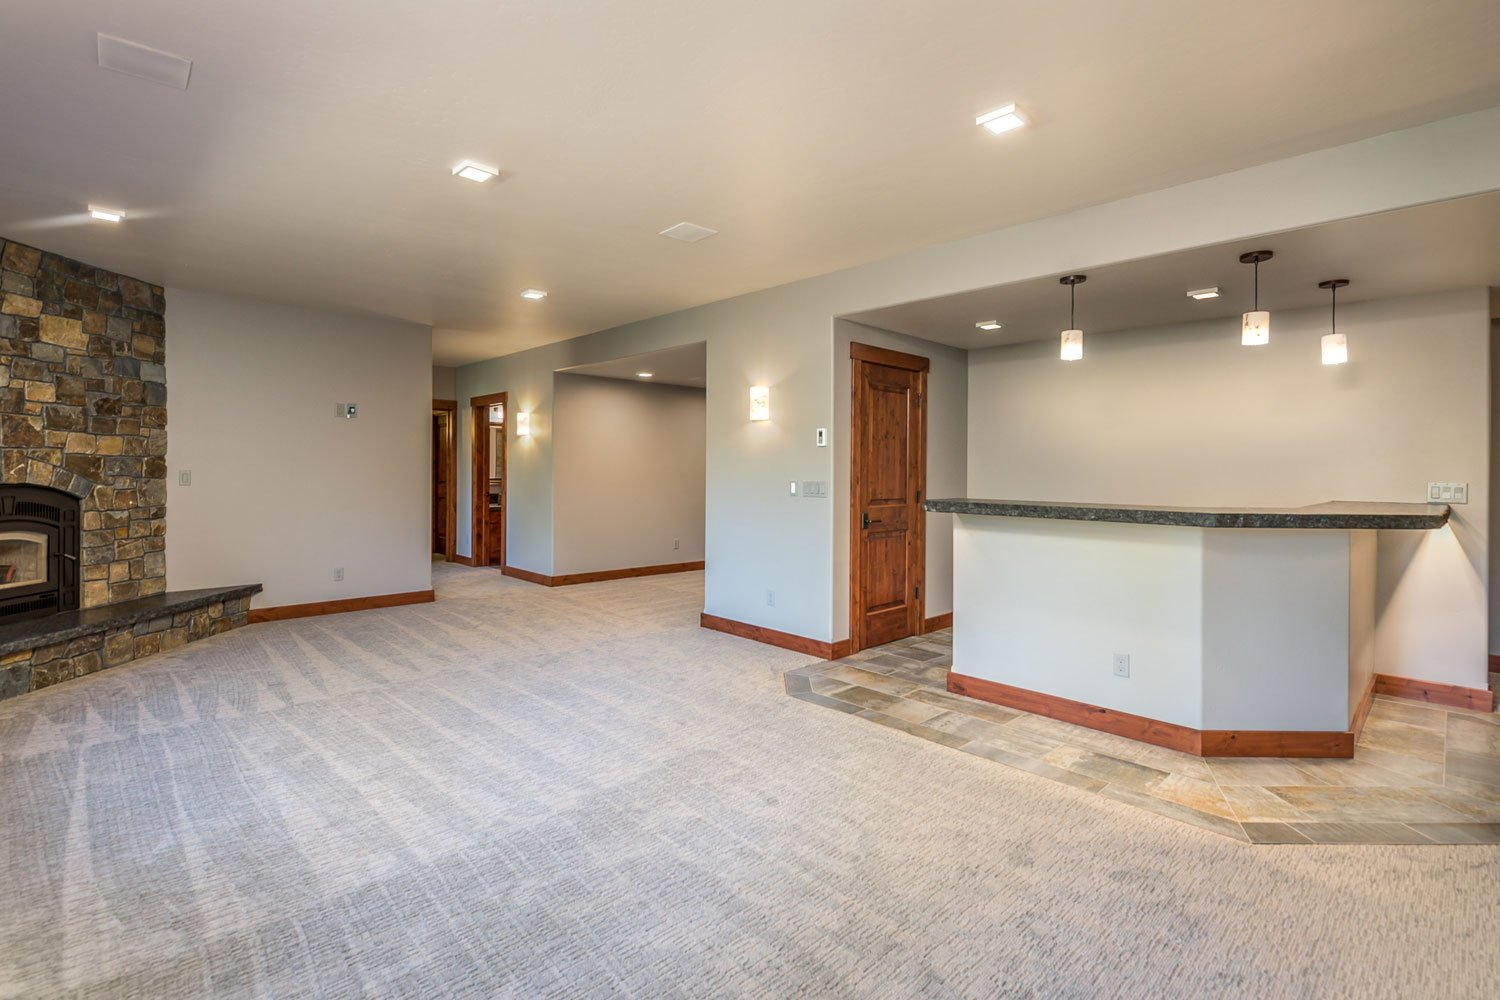 bane-built-meadowbrook-family-room-3085